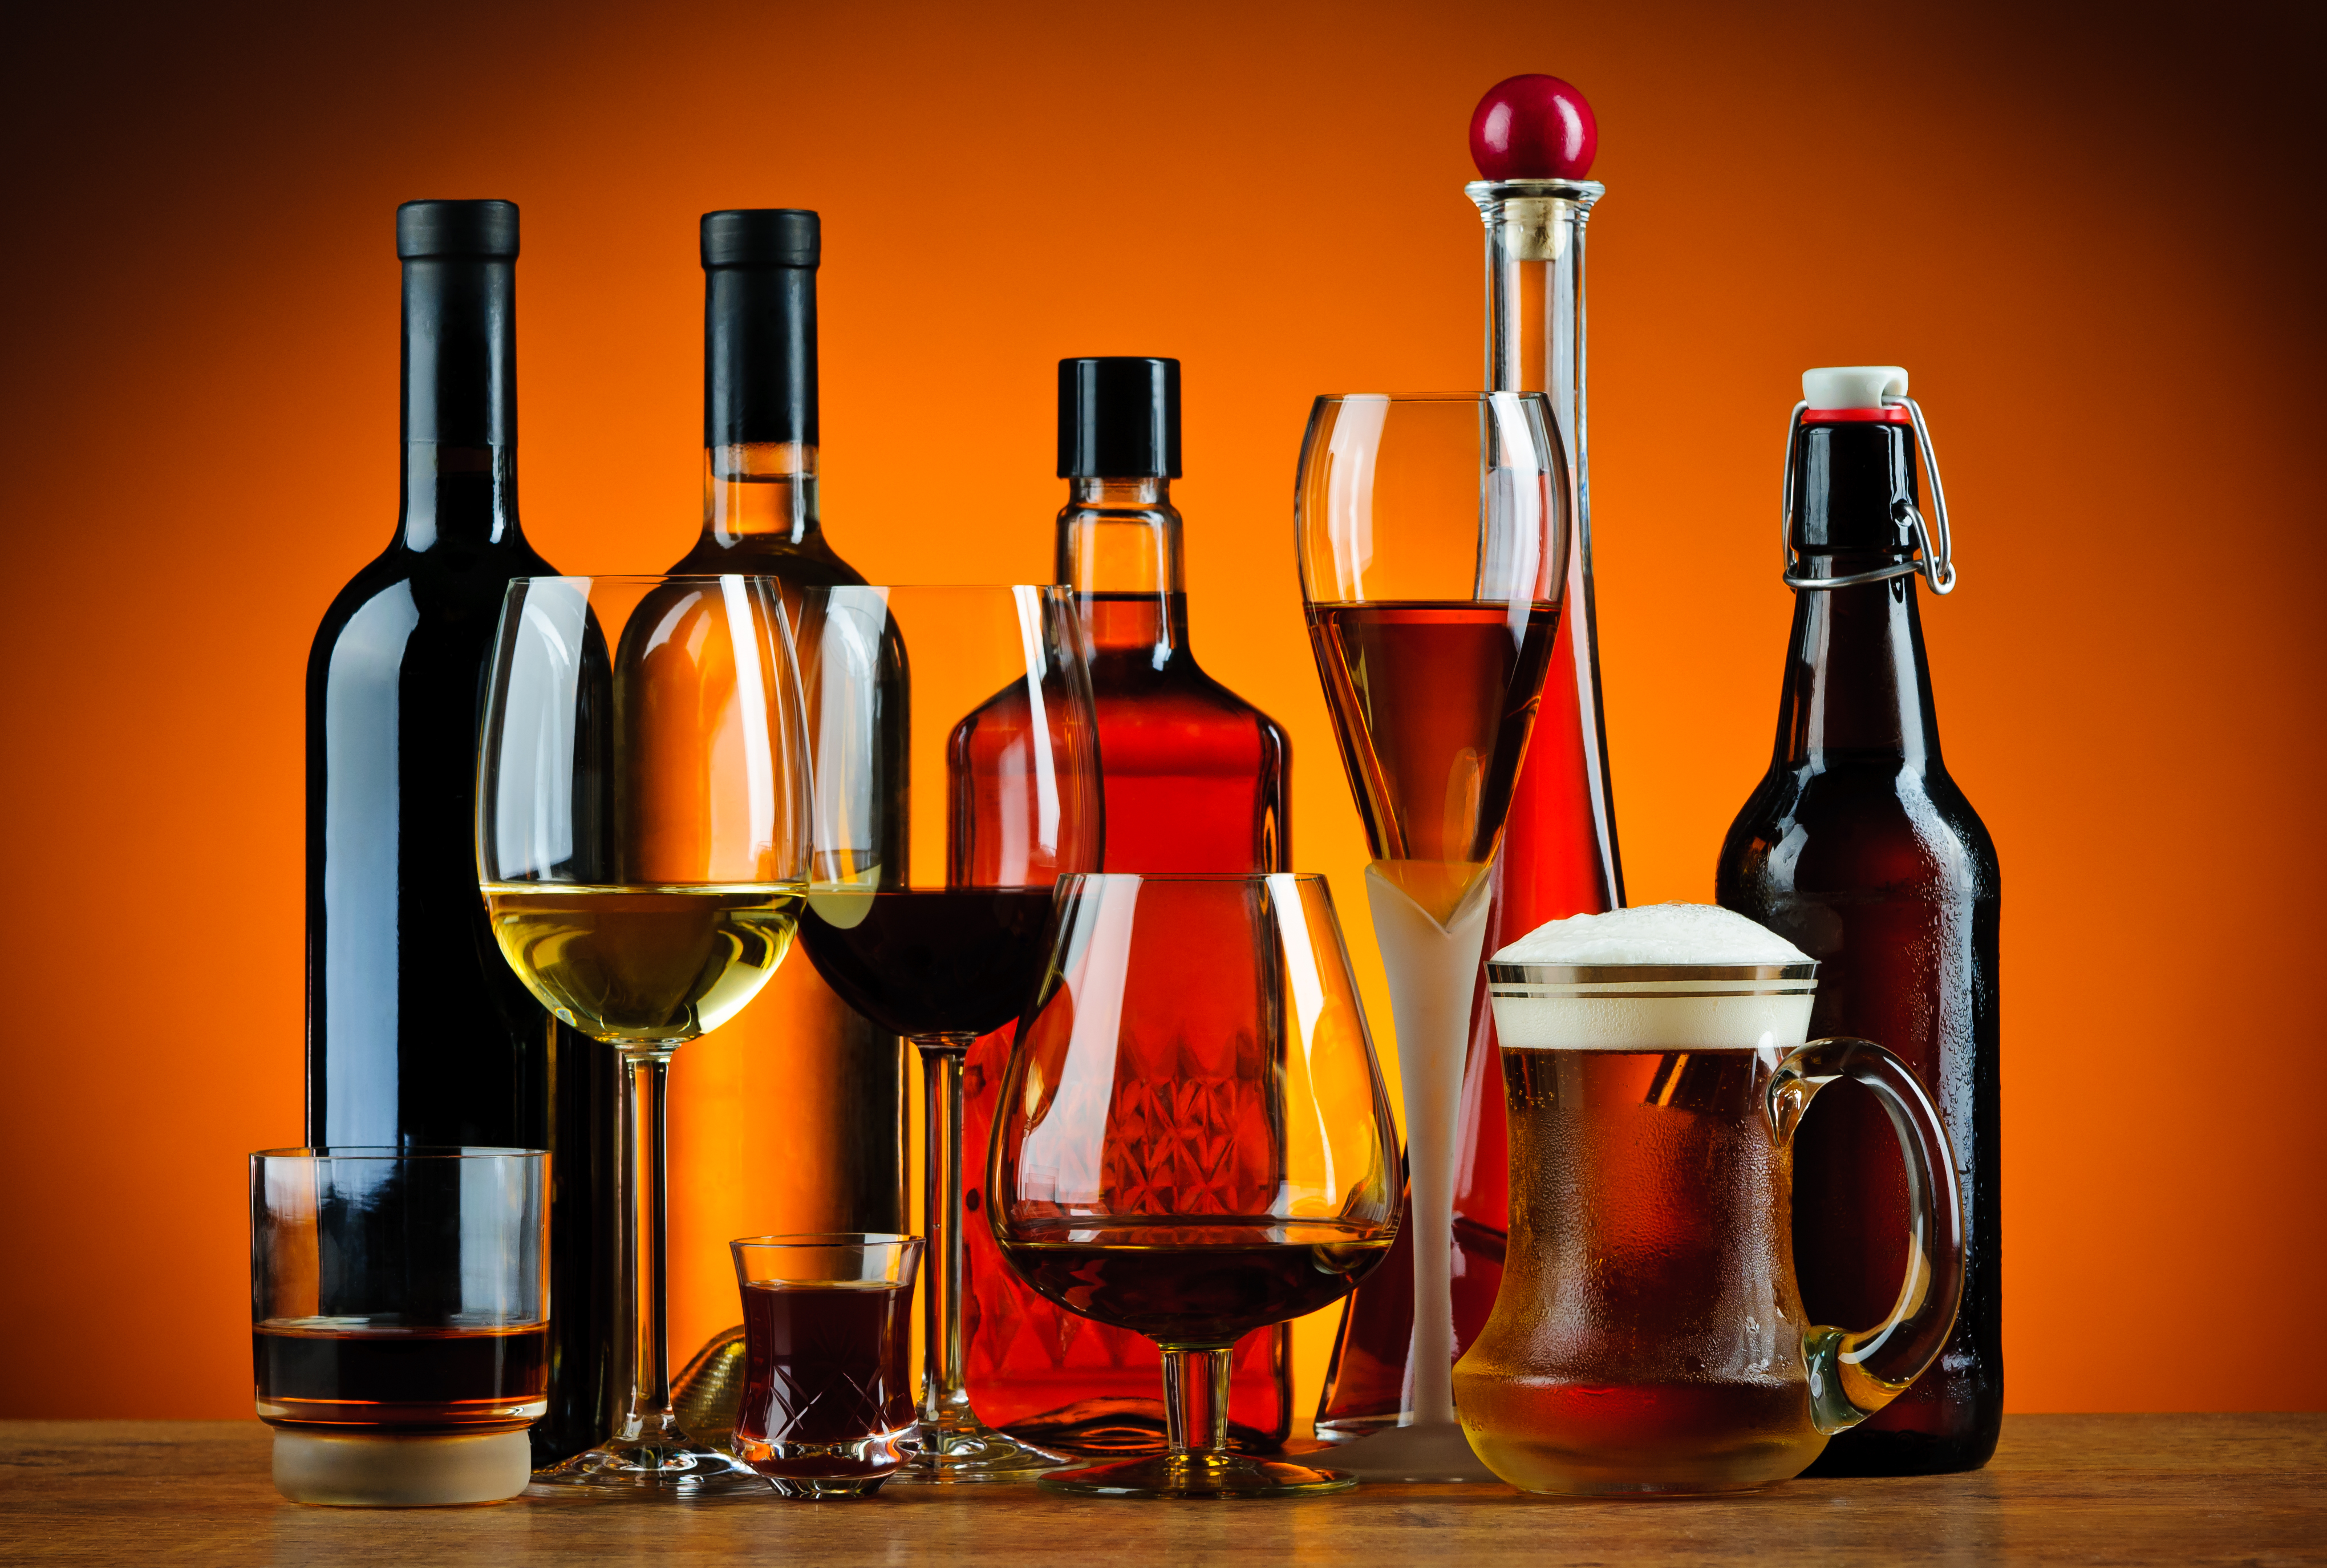 Lancet Global Study Disproves Healthy Alcohol Consumption Theory